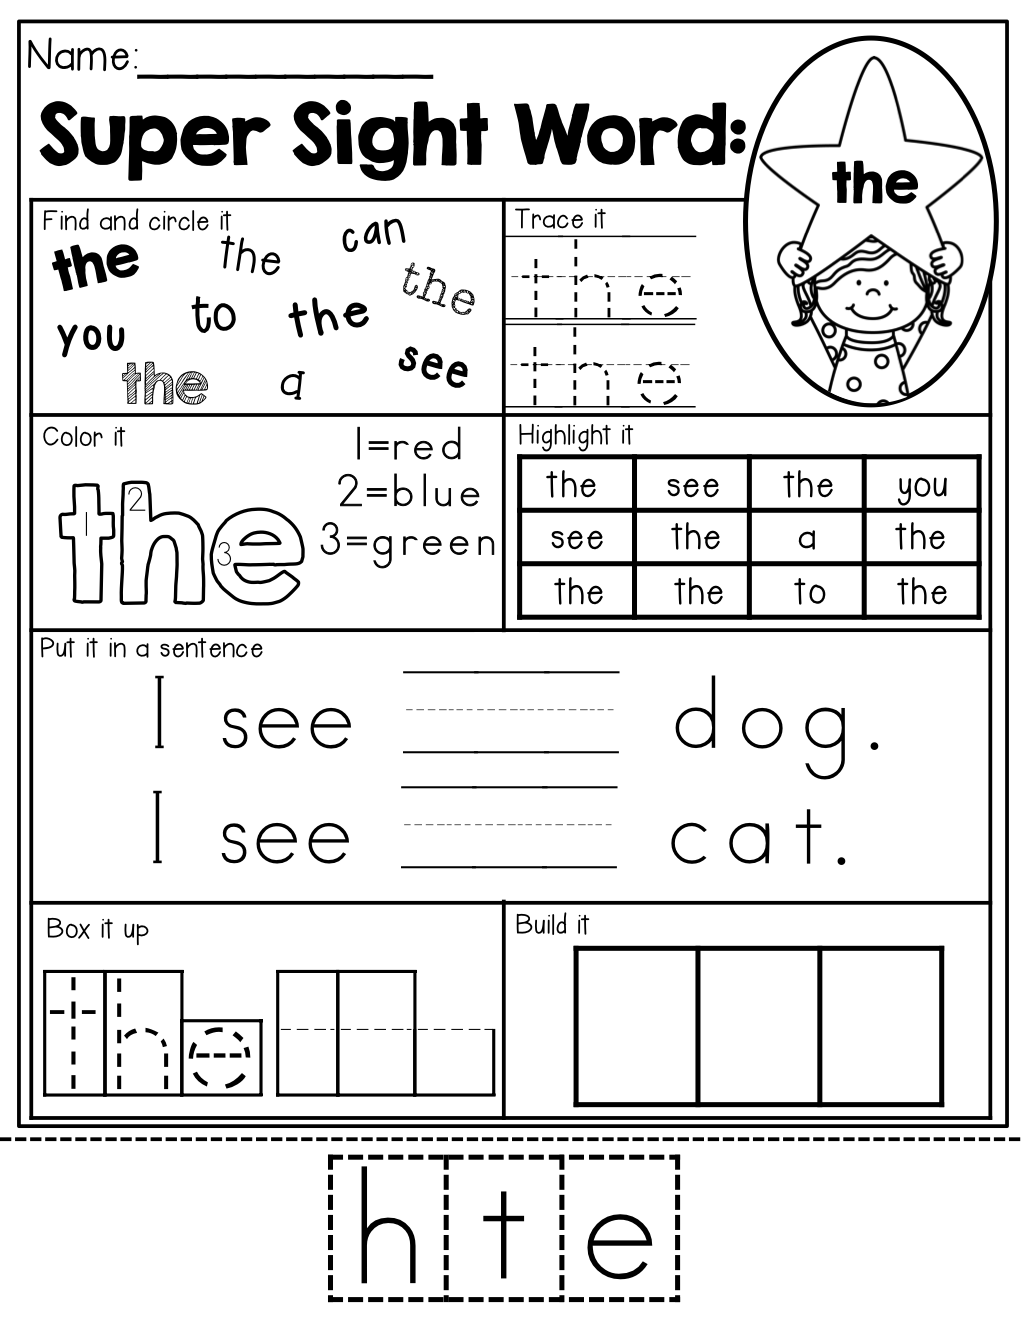 Super Sight Words So Many Activities On One Page To Help Students Master Sight Words Love A Sight Words Kindergarten Teaching Sight Words Sight Word Practice [ 1325 x 1024 Pixel ]